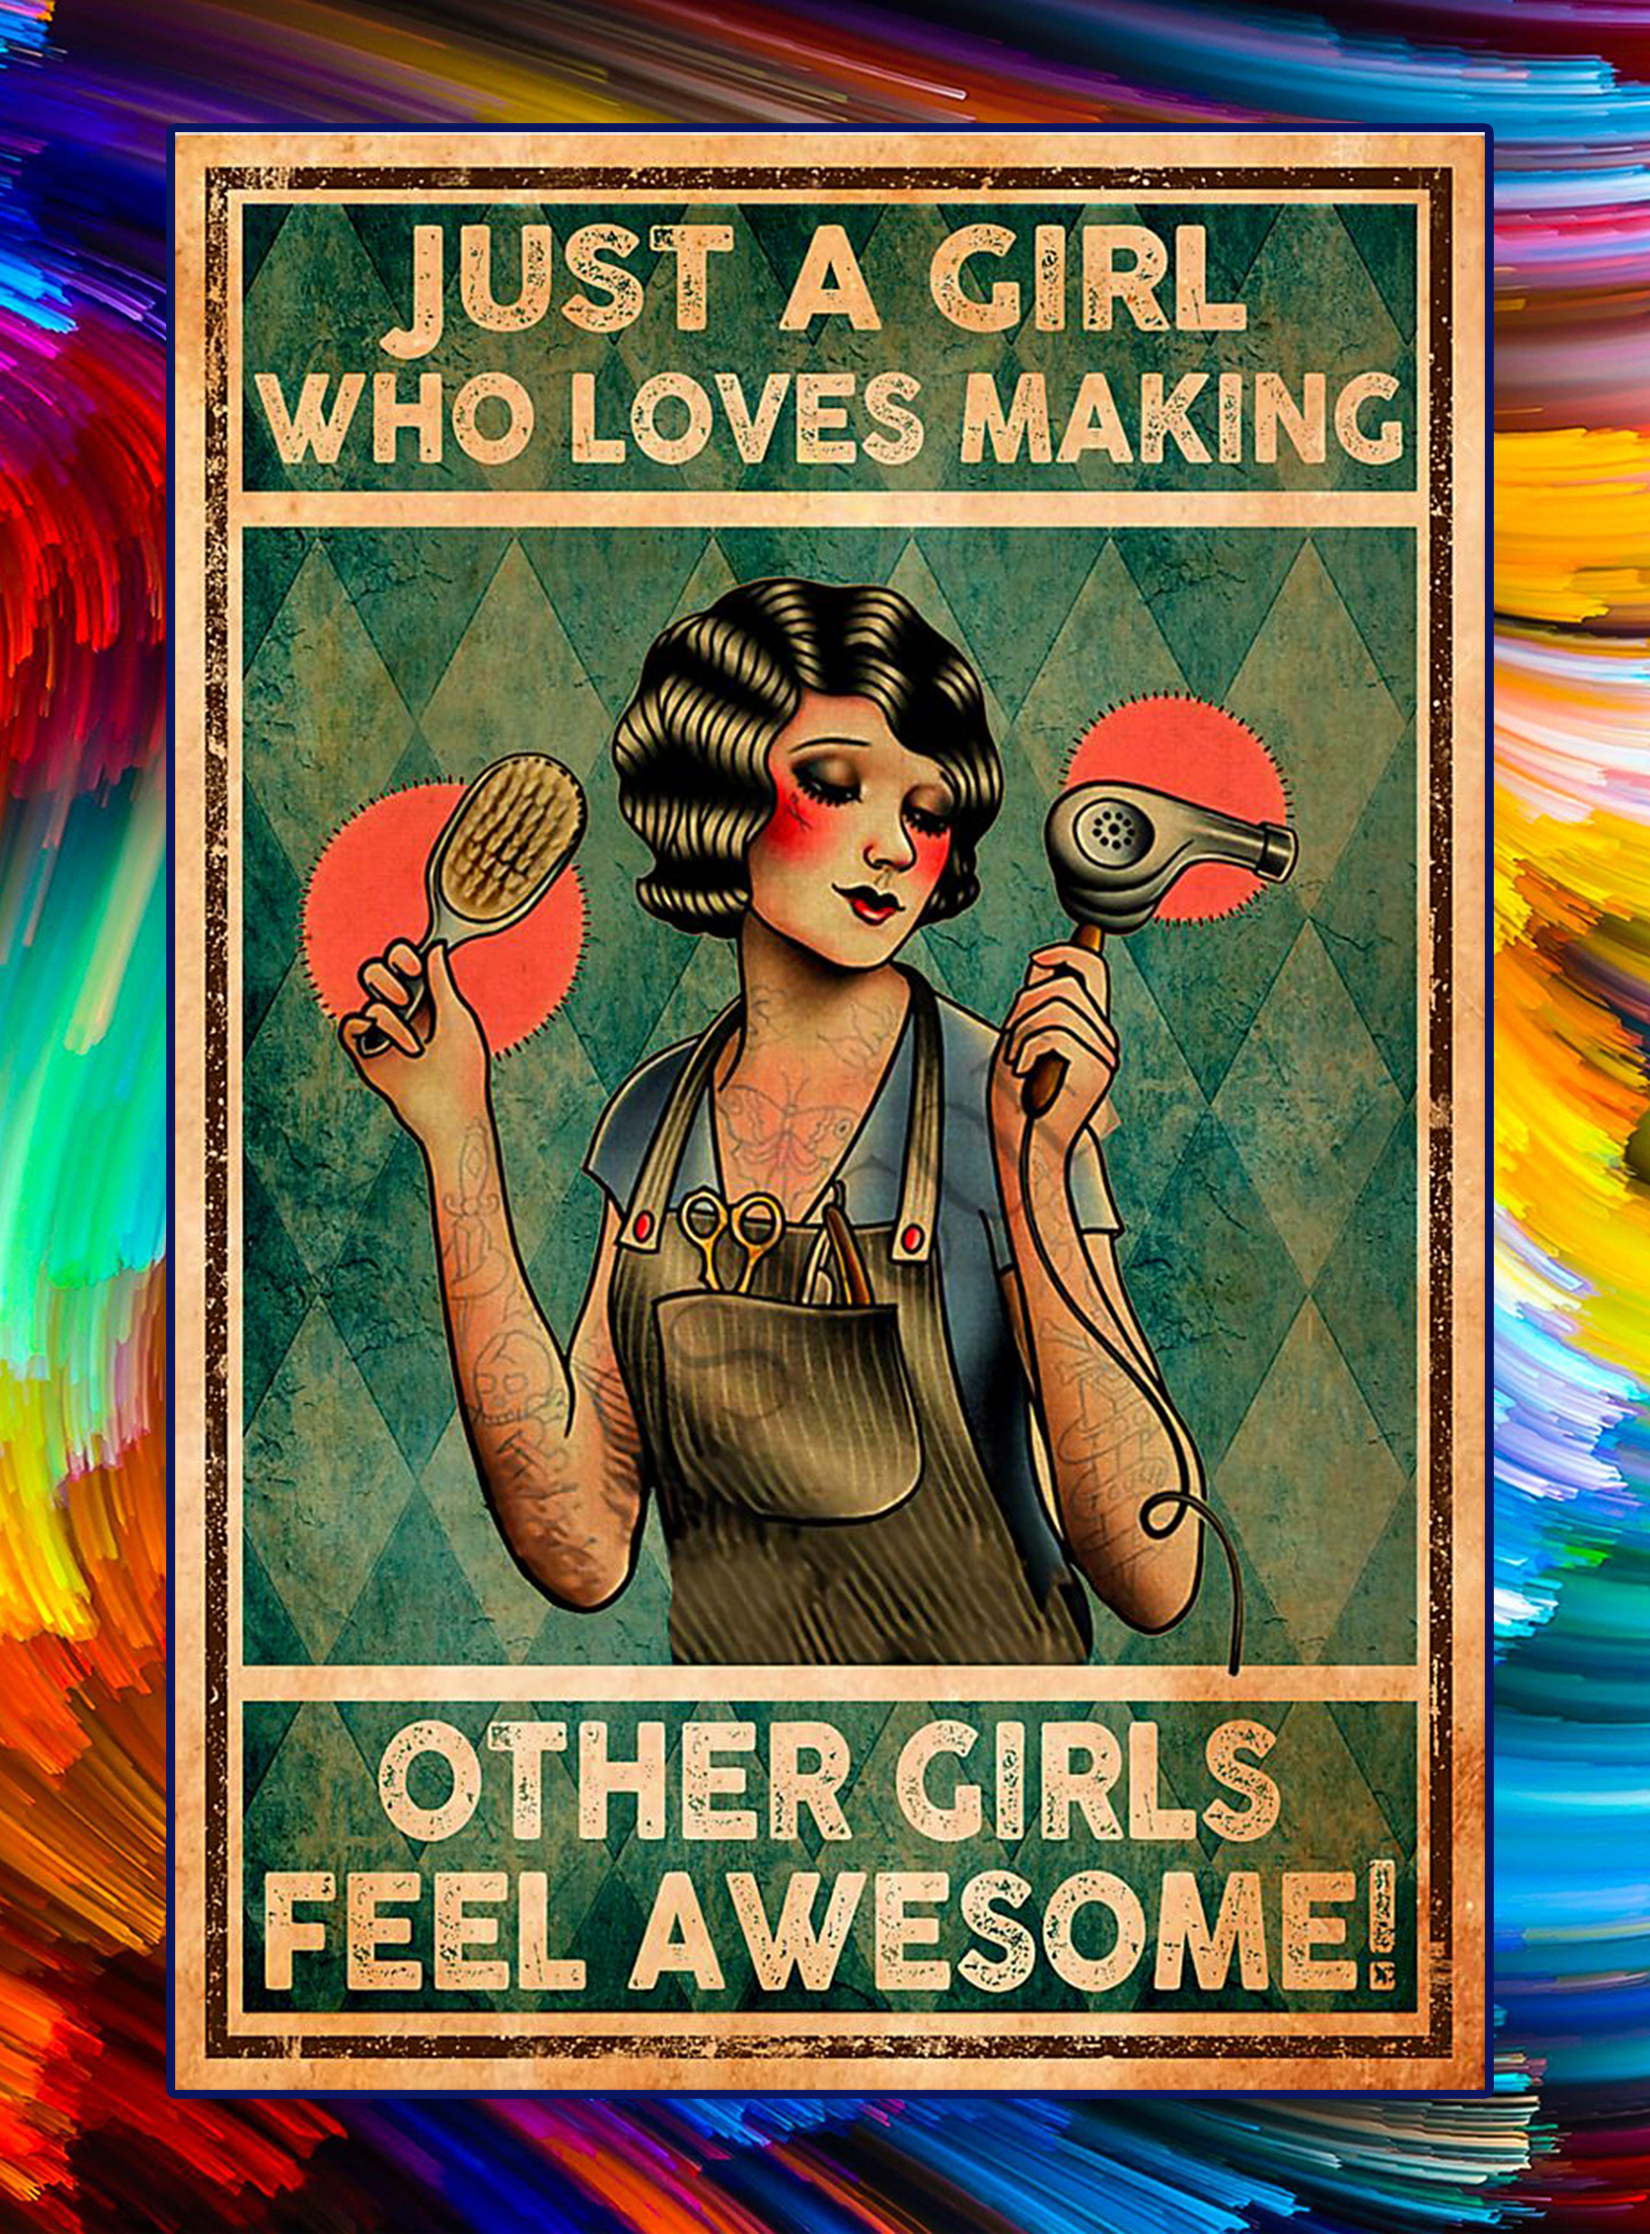 Just a girl who loves making other girls feel awesome poster - A1